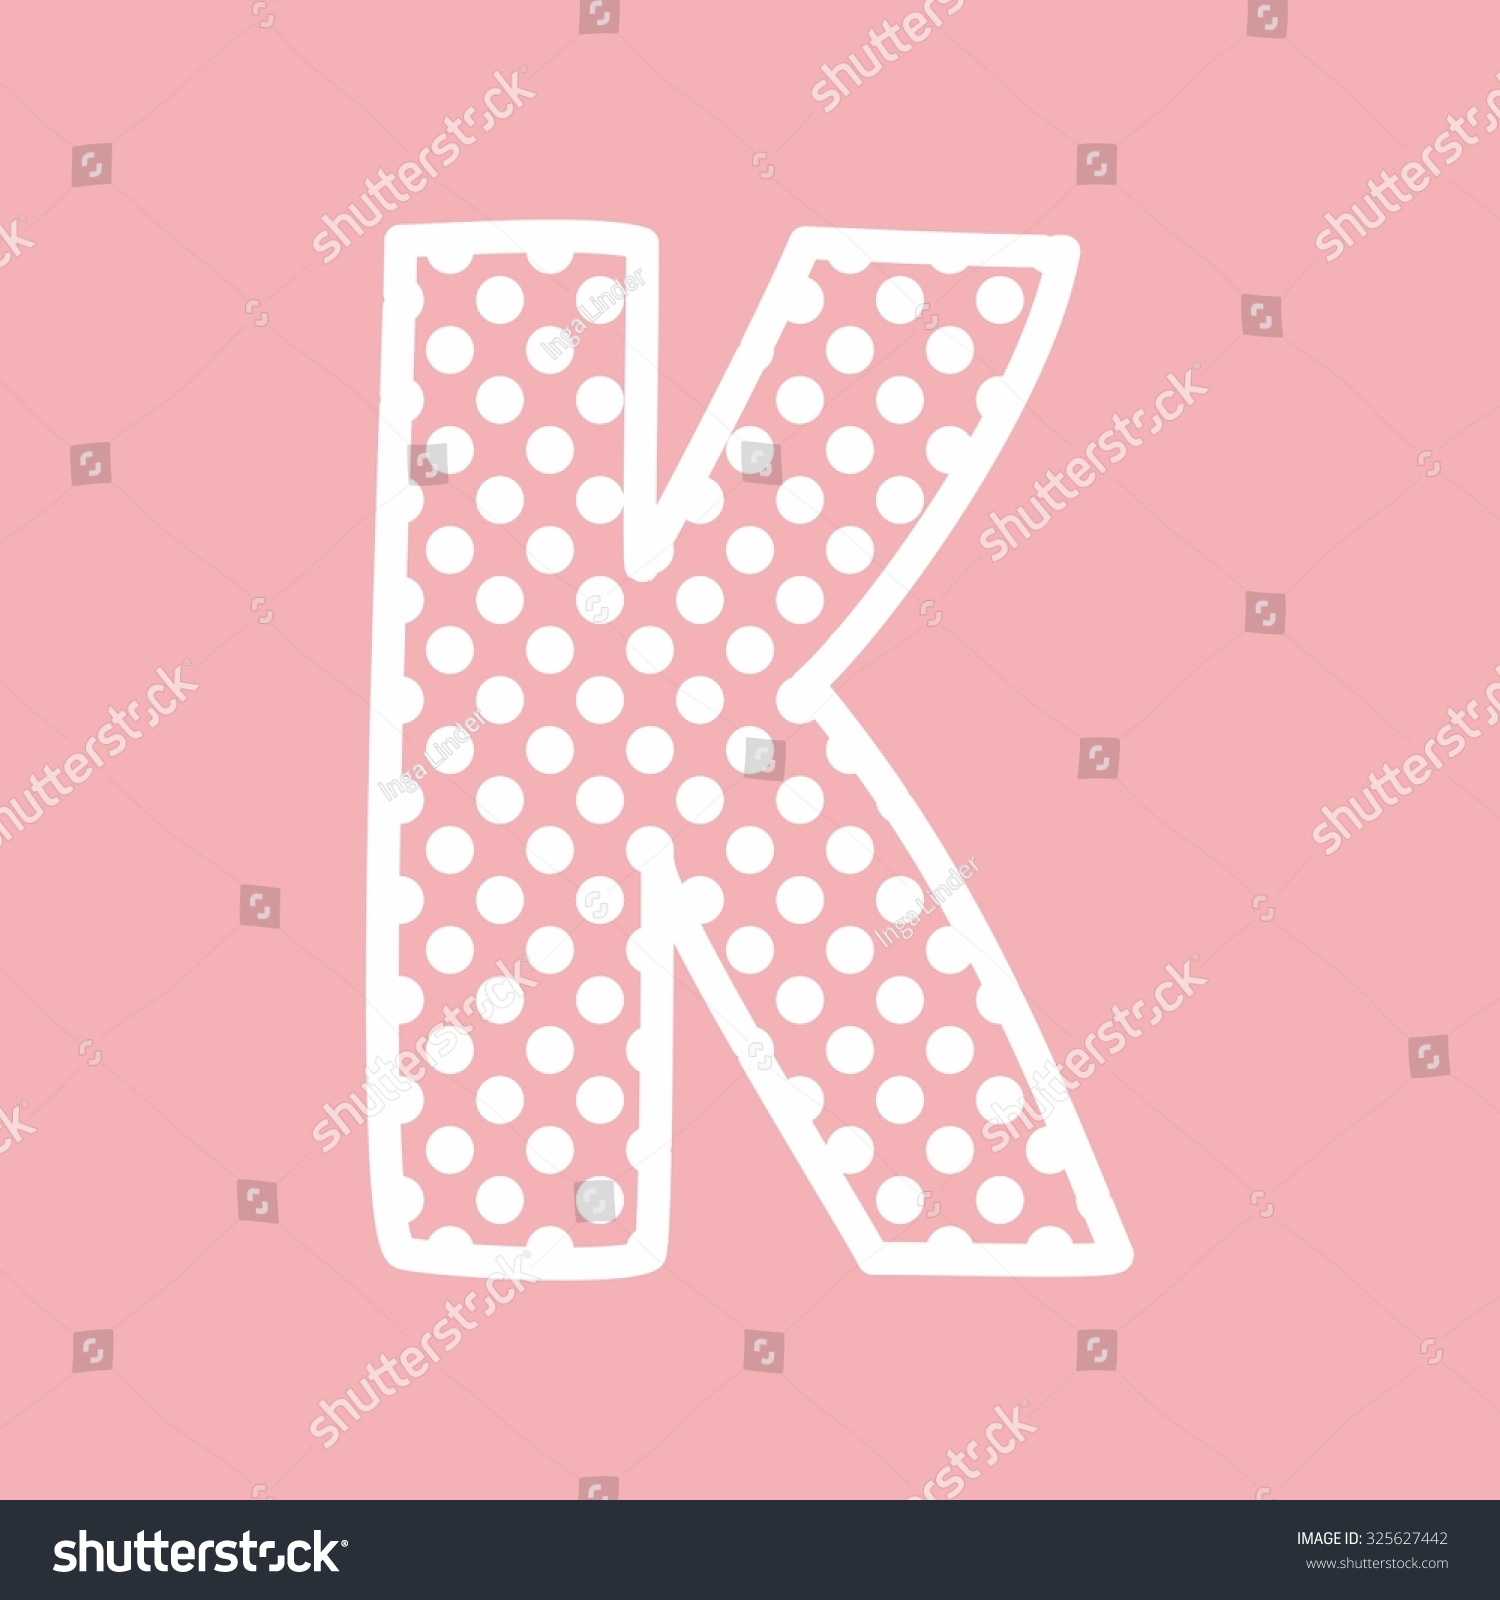 K alphabet letter with white polka dots on pink background | EZ Canvas